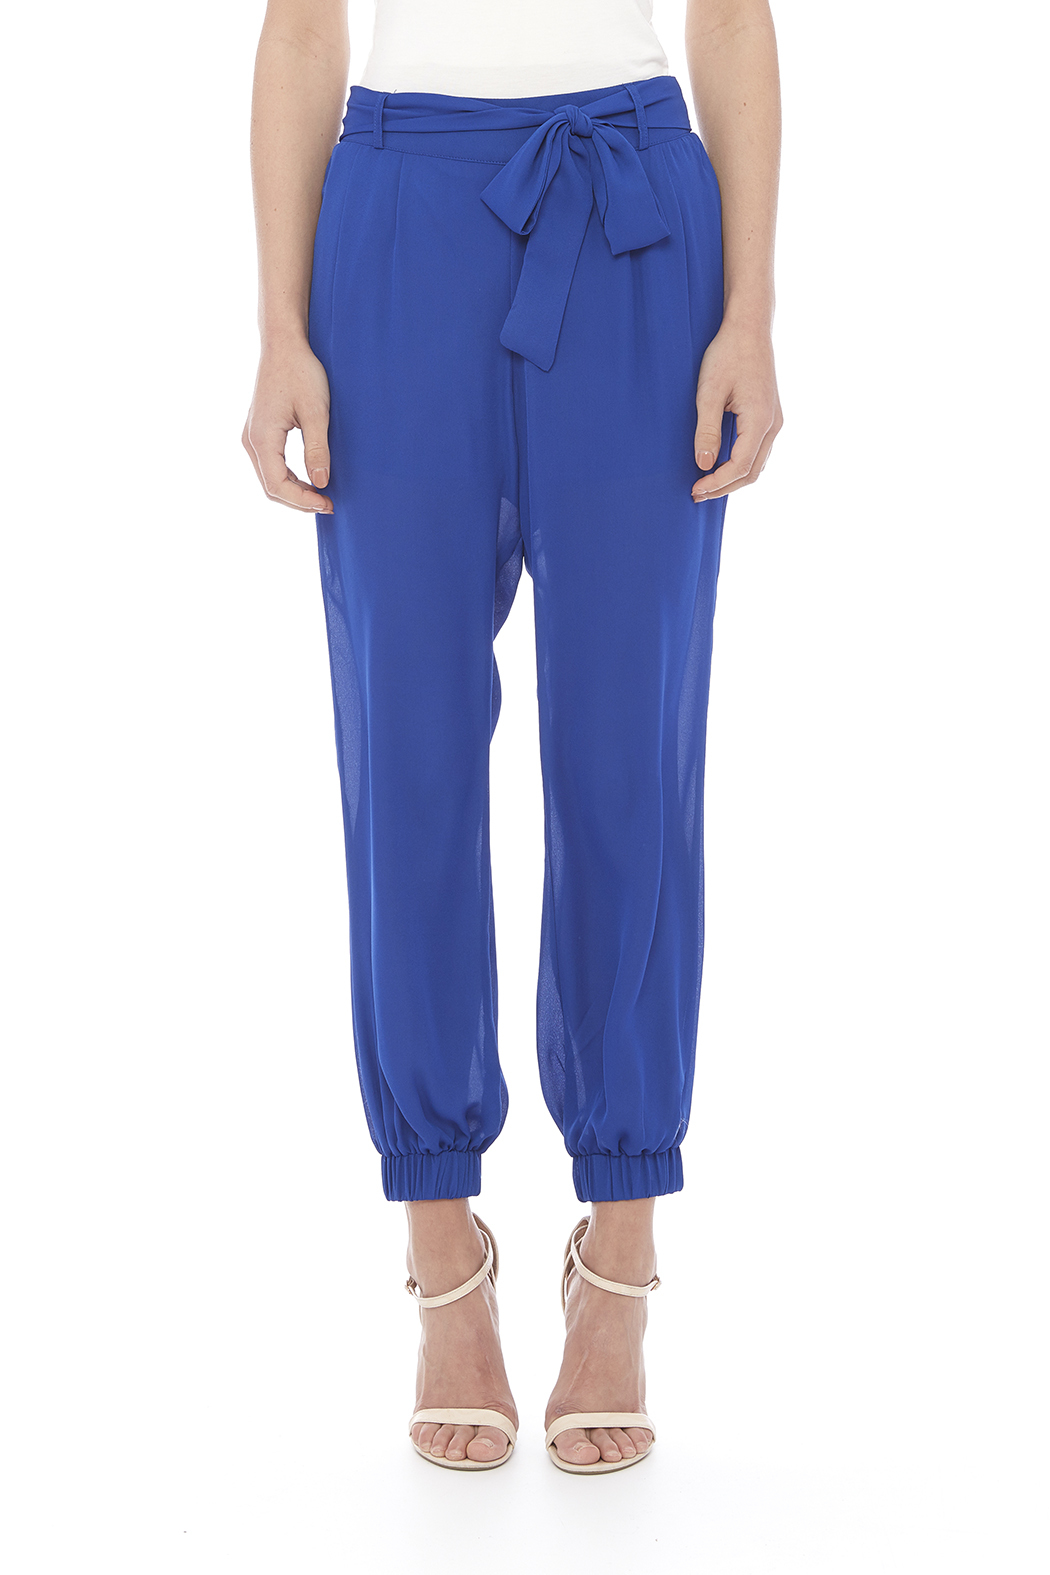 miss avenue  Lined Jogger Pants - Side Cropped Image